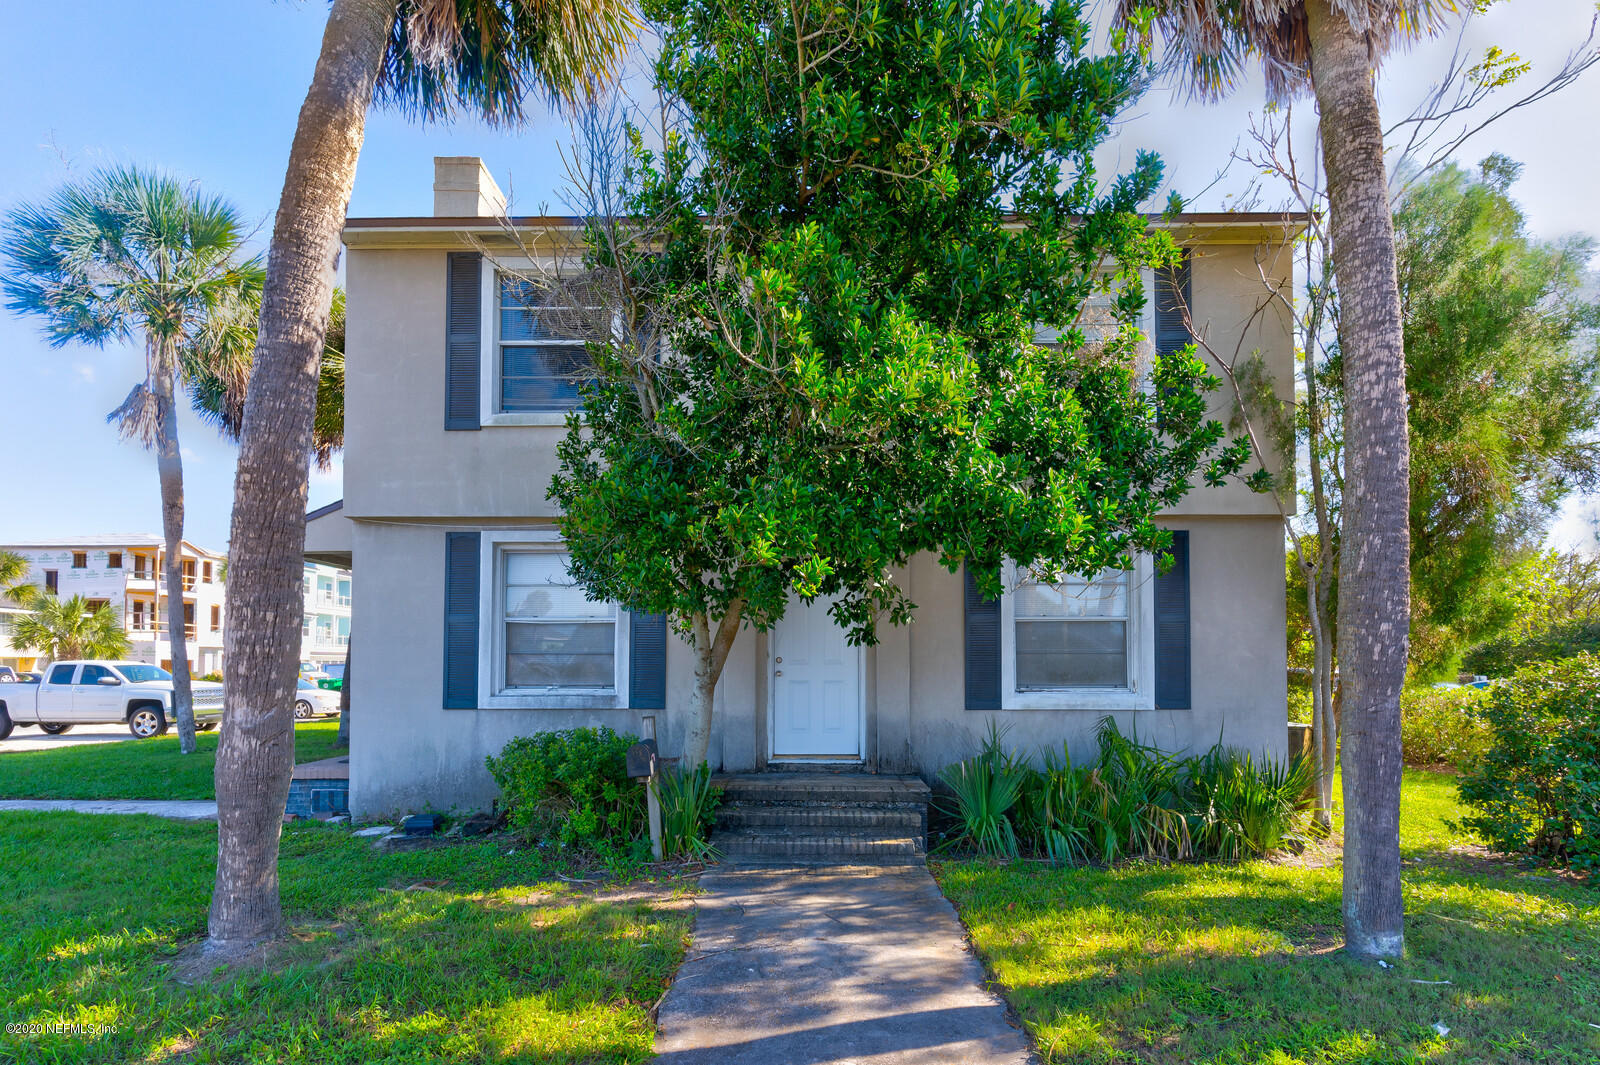 230 12TH, JACKSONVILLE BEACH, FLORIDA 32250, 6 Bedrooms Bedrooms, ,4 BathroomsBathrooms,Investment / MultiFamily,For sale,12TH,1084092